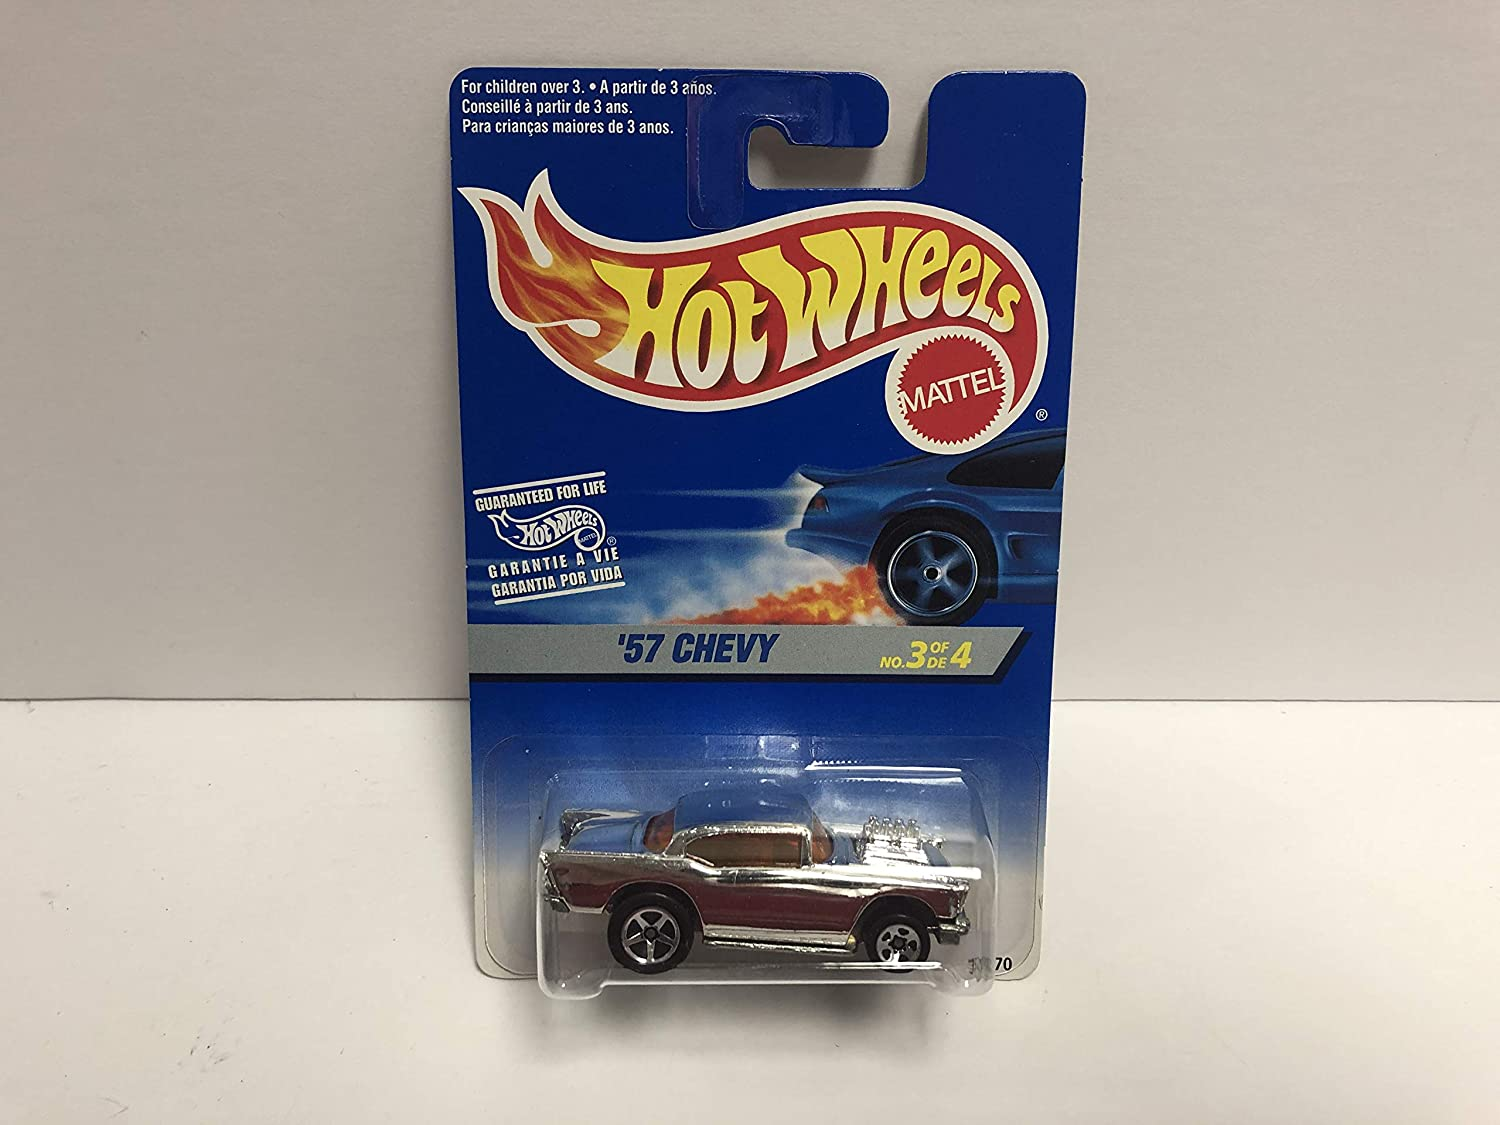 57 CHEVY 1996 Mattel Hot Wheels diecast 3/4#15270 ~ RARE Foreign Carded at Amazons Sports Collectibles Store